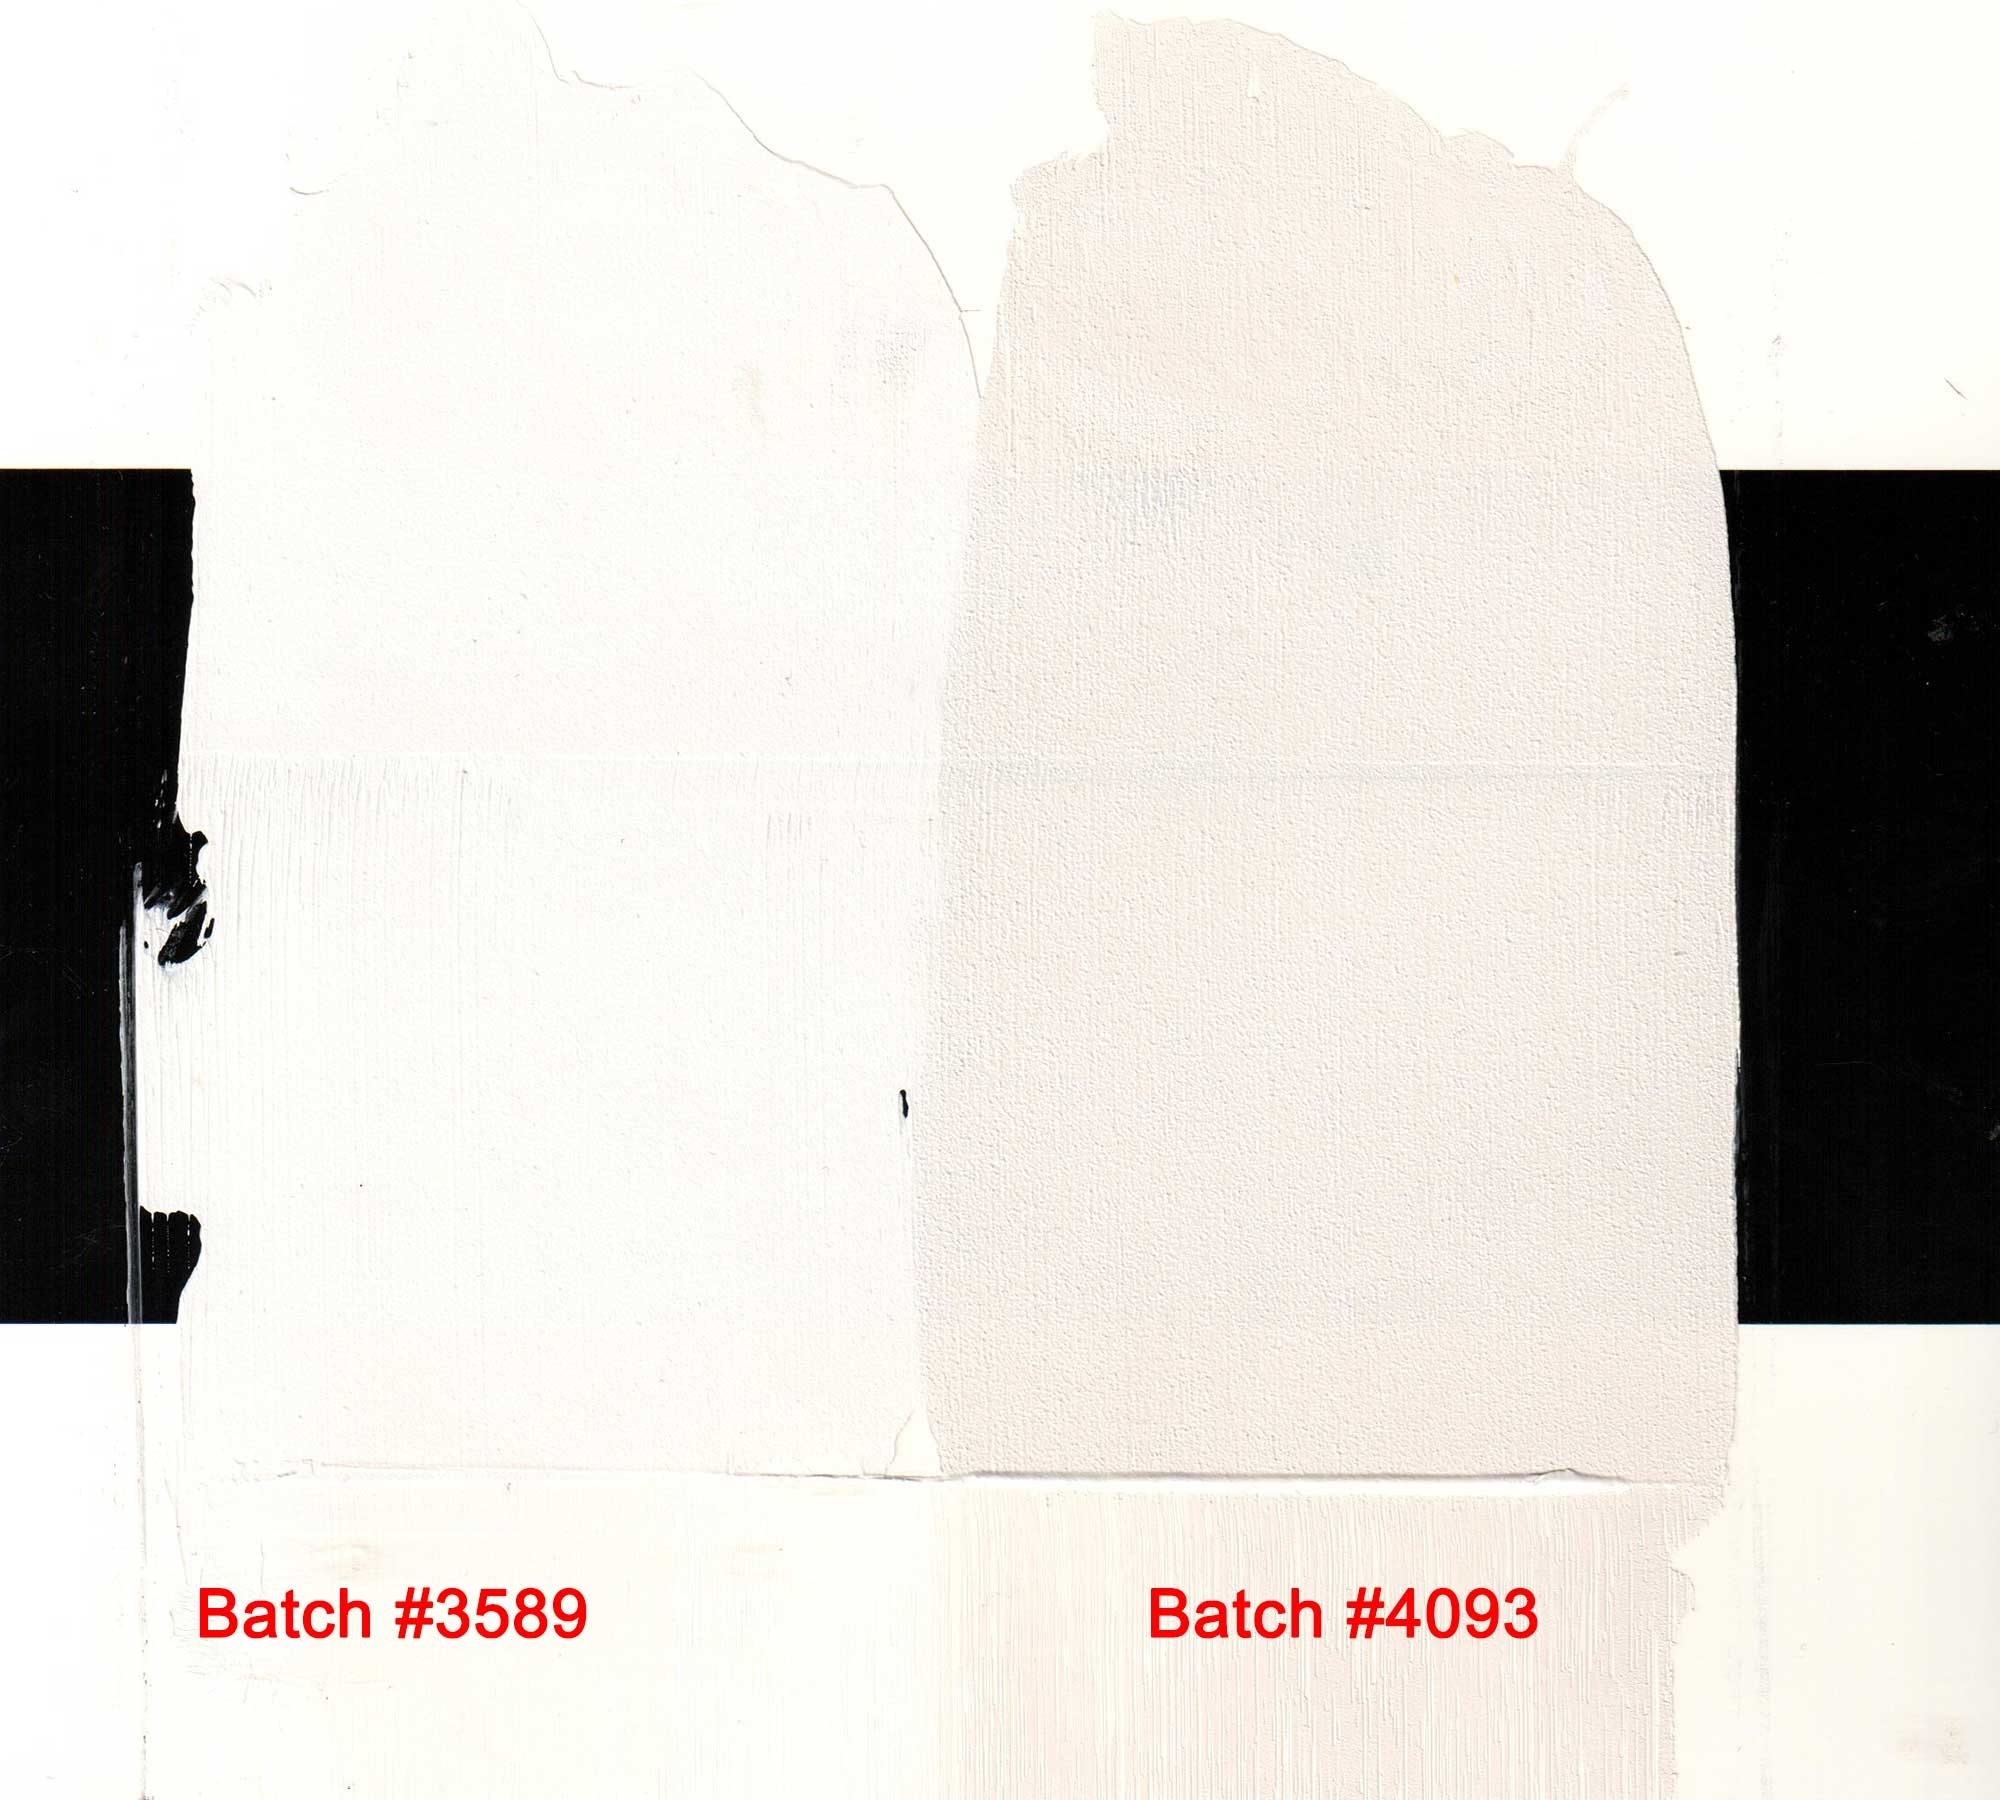 Drawdown of Batch 4093 and standard stack process flake white